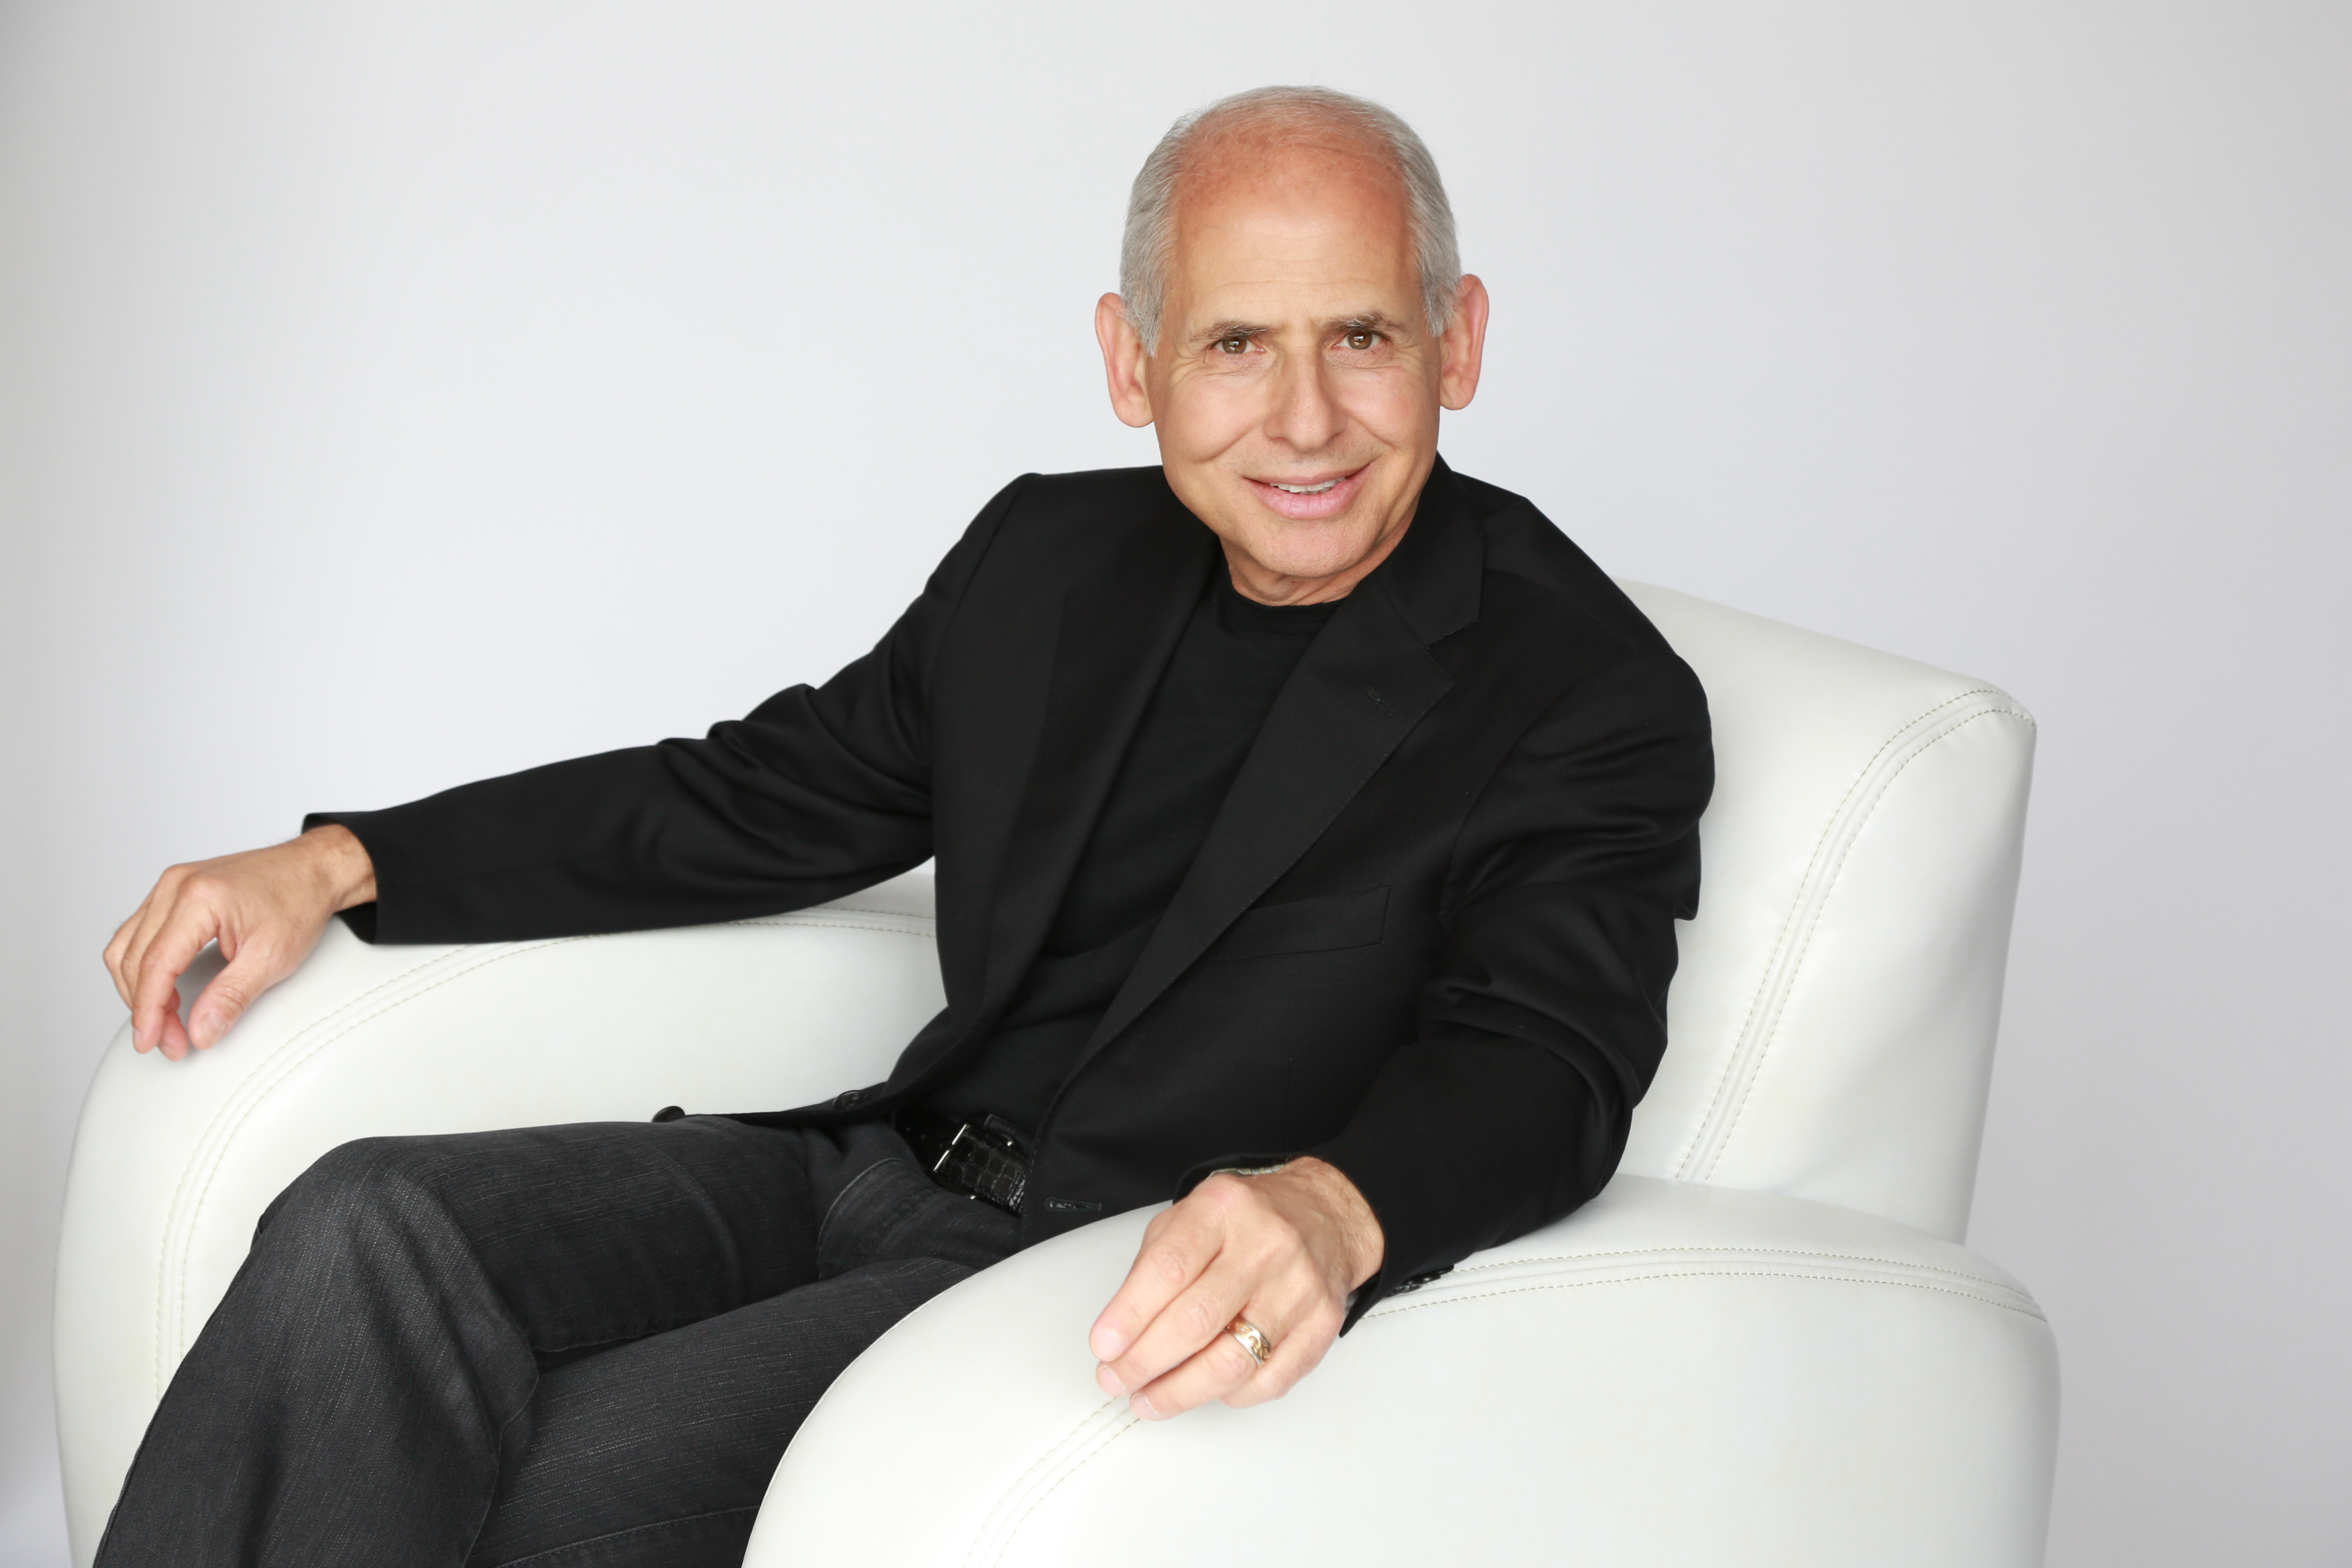 Dr. Daniel Amen as featured on the Jesus Calling podcast